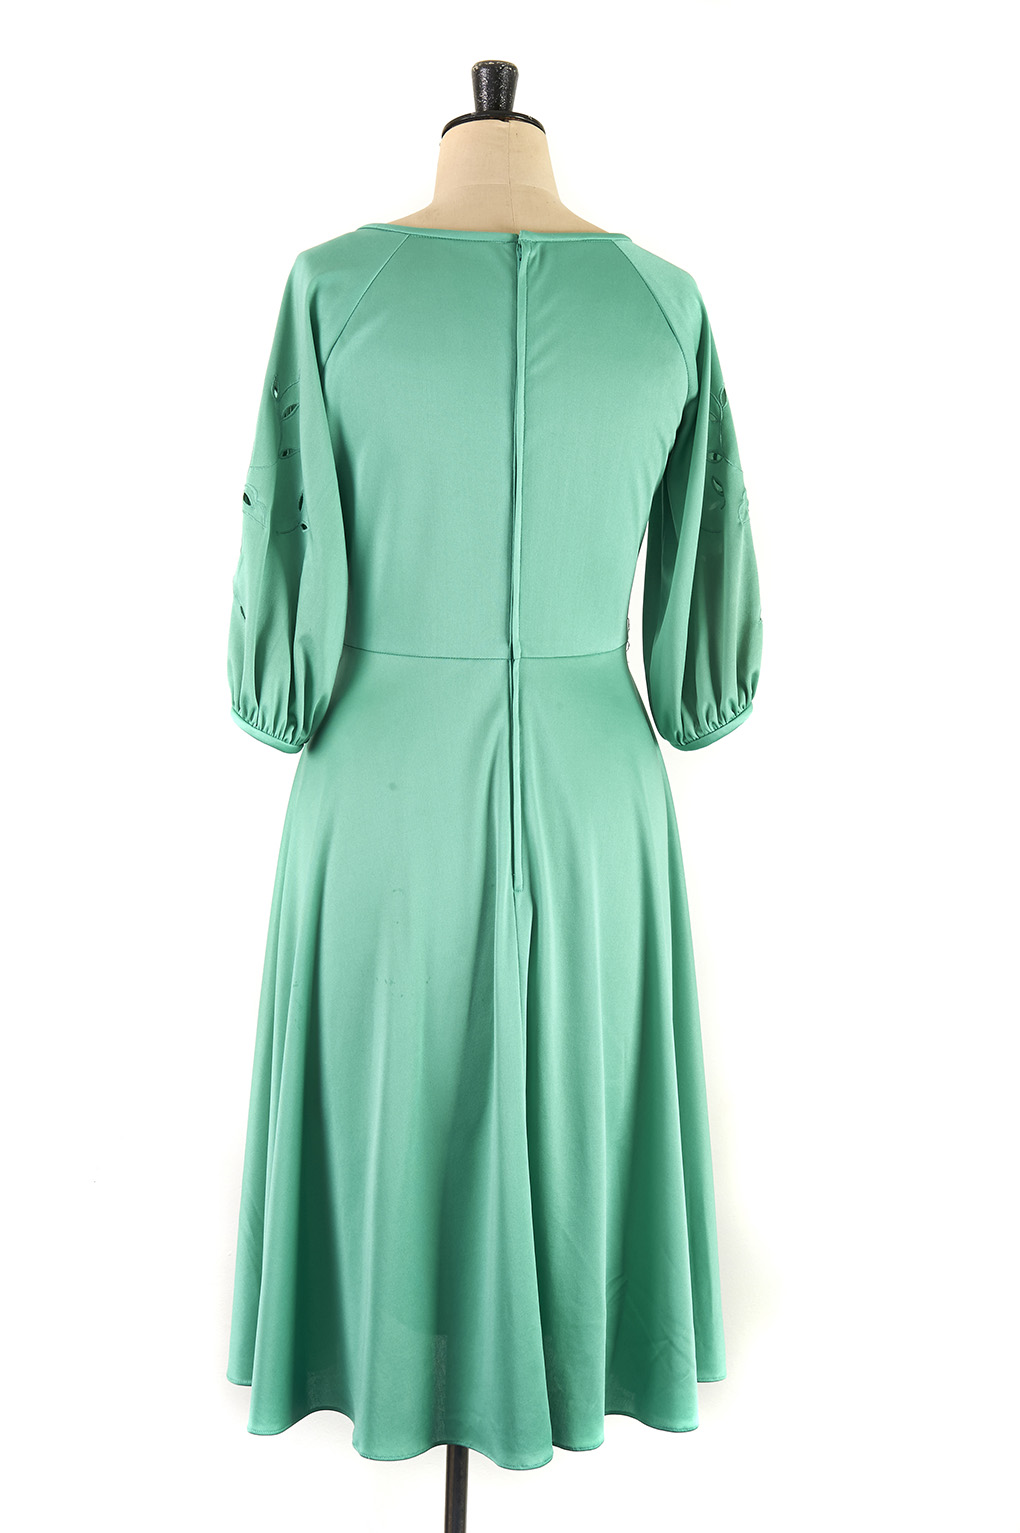 Vintage green dress with detailing on arm